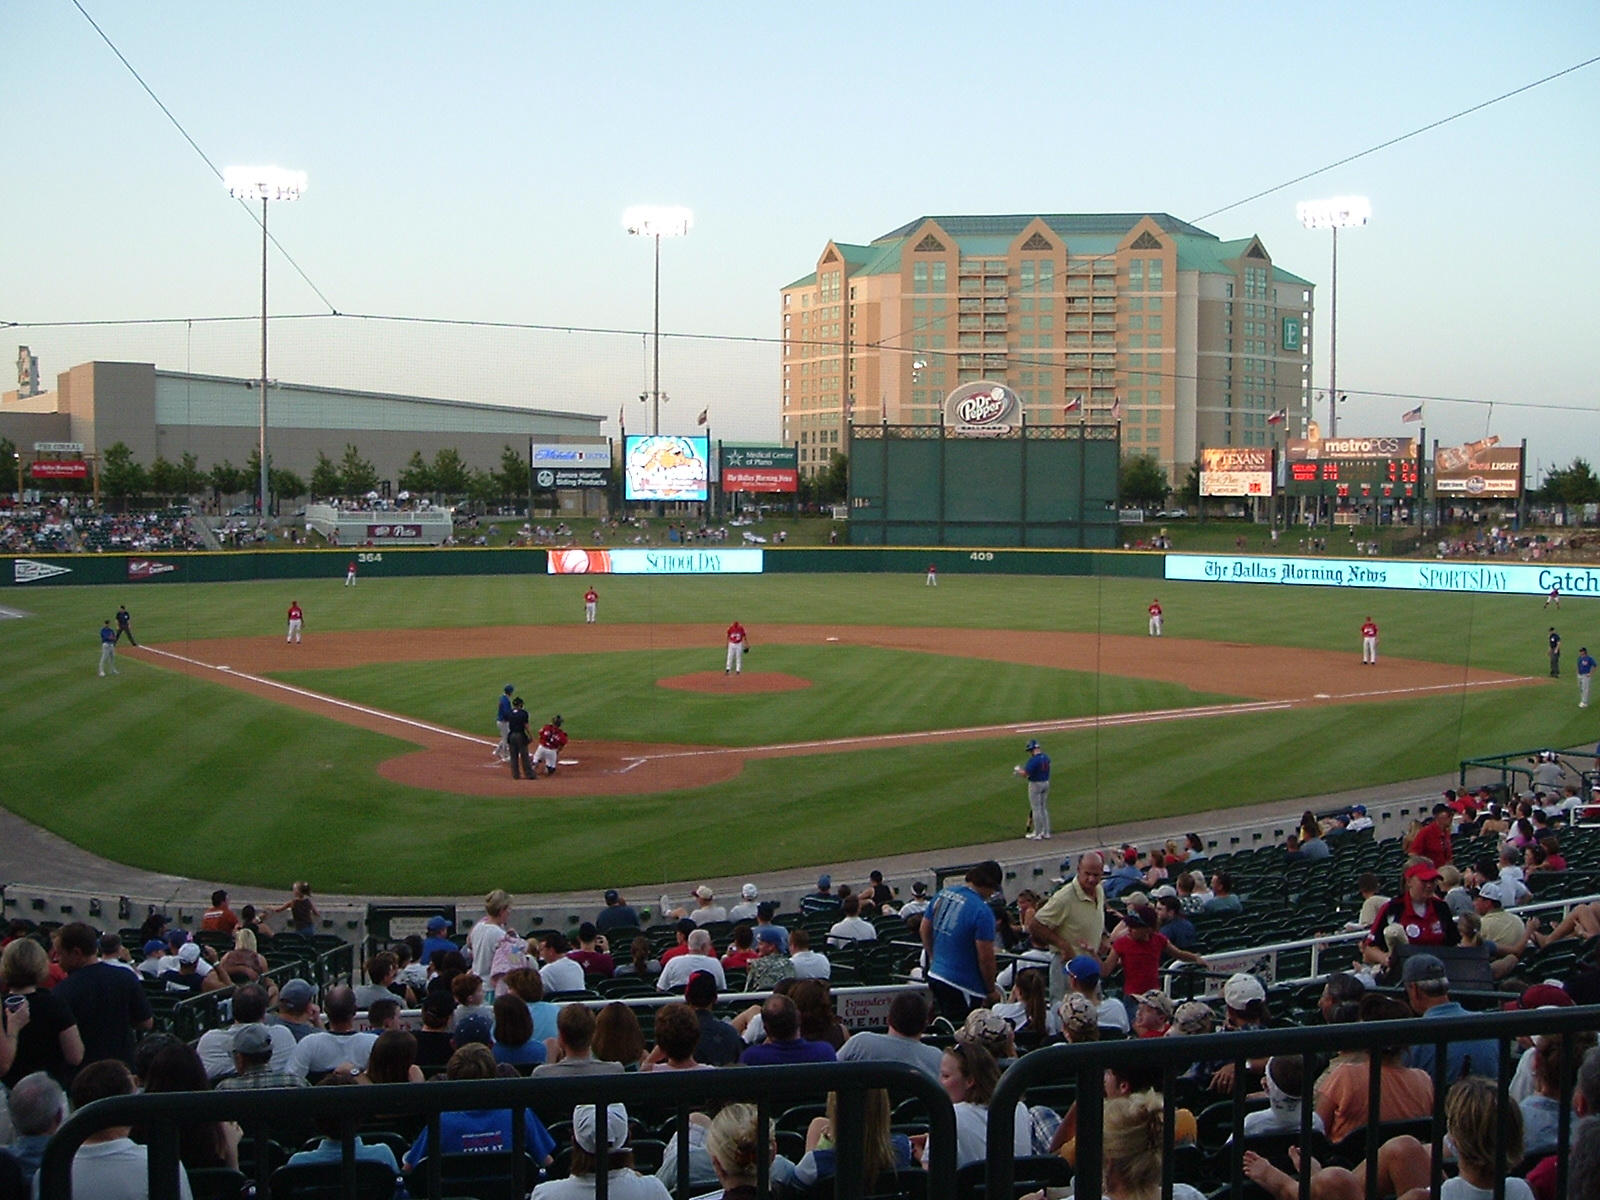 Get directions, reviews and information for Dr. Pepper Park in Roanoke, VA.